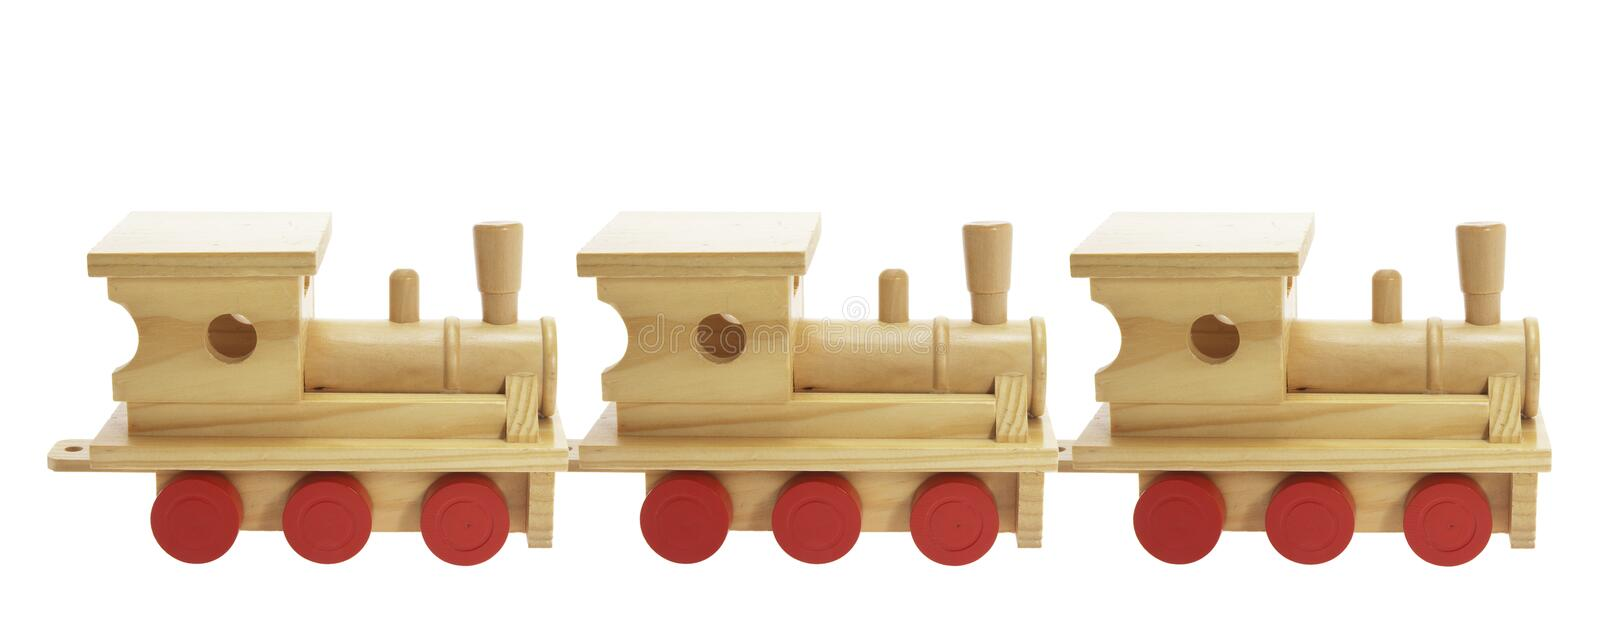 Download Wooden Toy Trains stock image. Image of still, cutout - 9176653